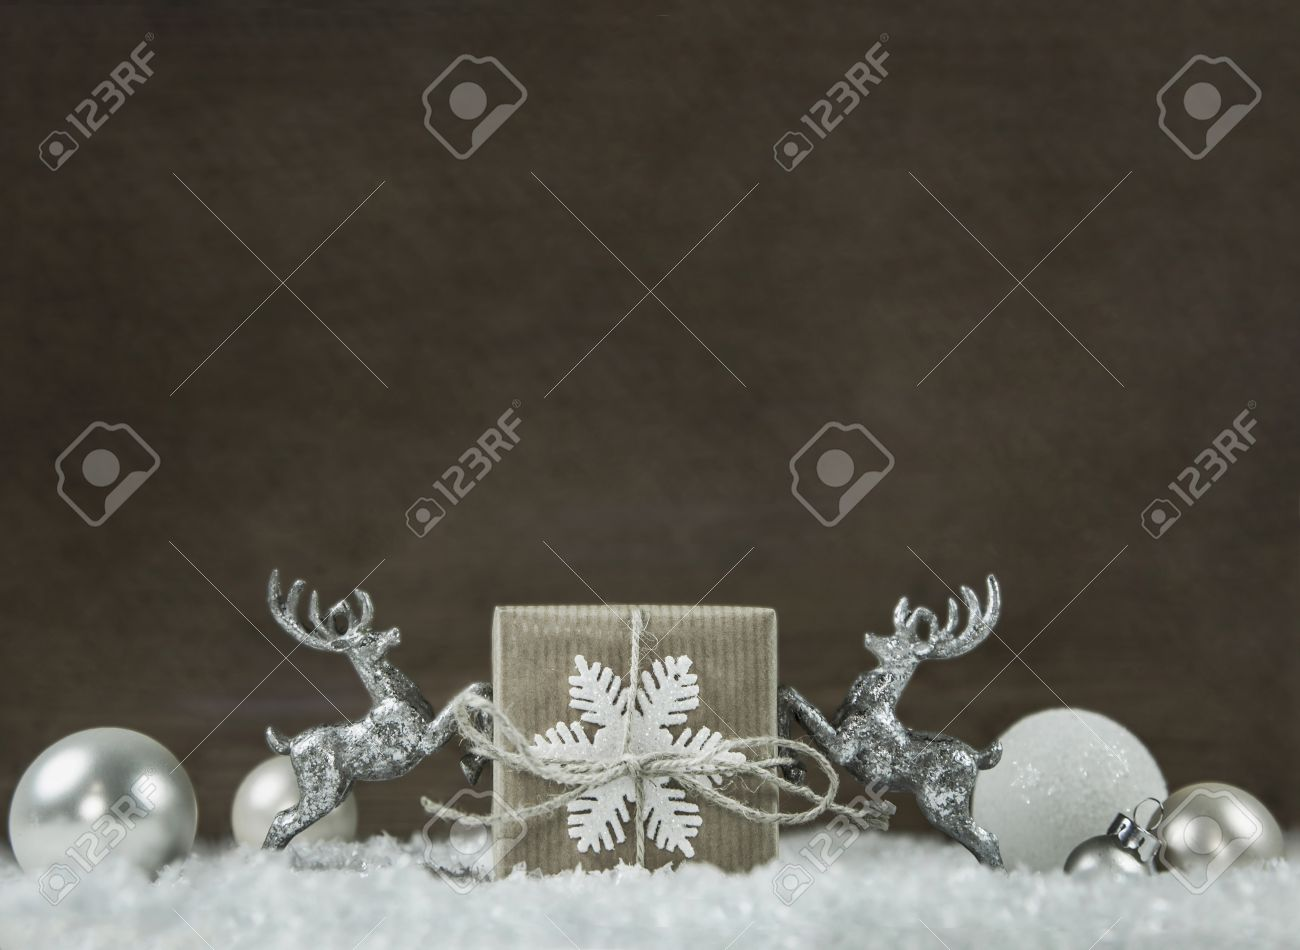 wooden shabby chic christmas background in silver white brown and grey colors with gift